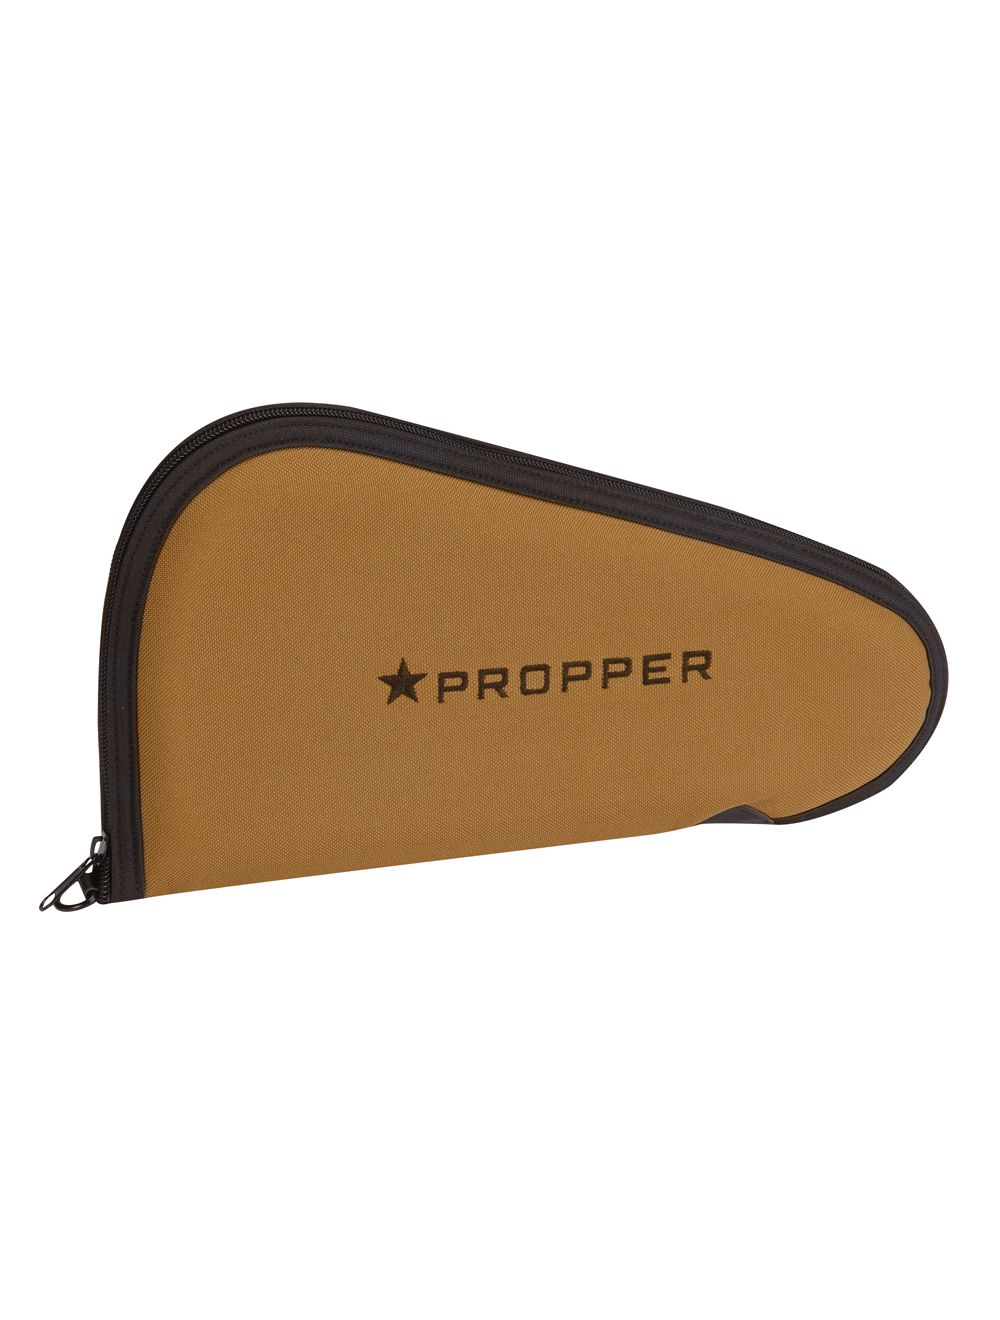 Propper Pistol Pouch - Coyote